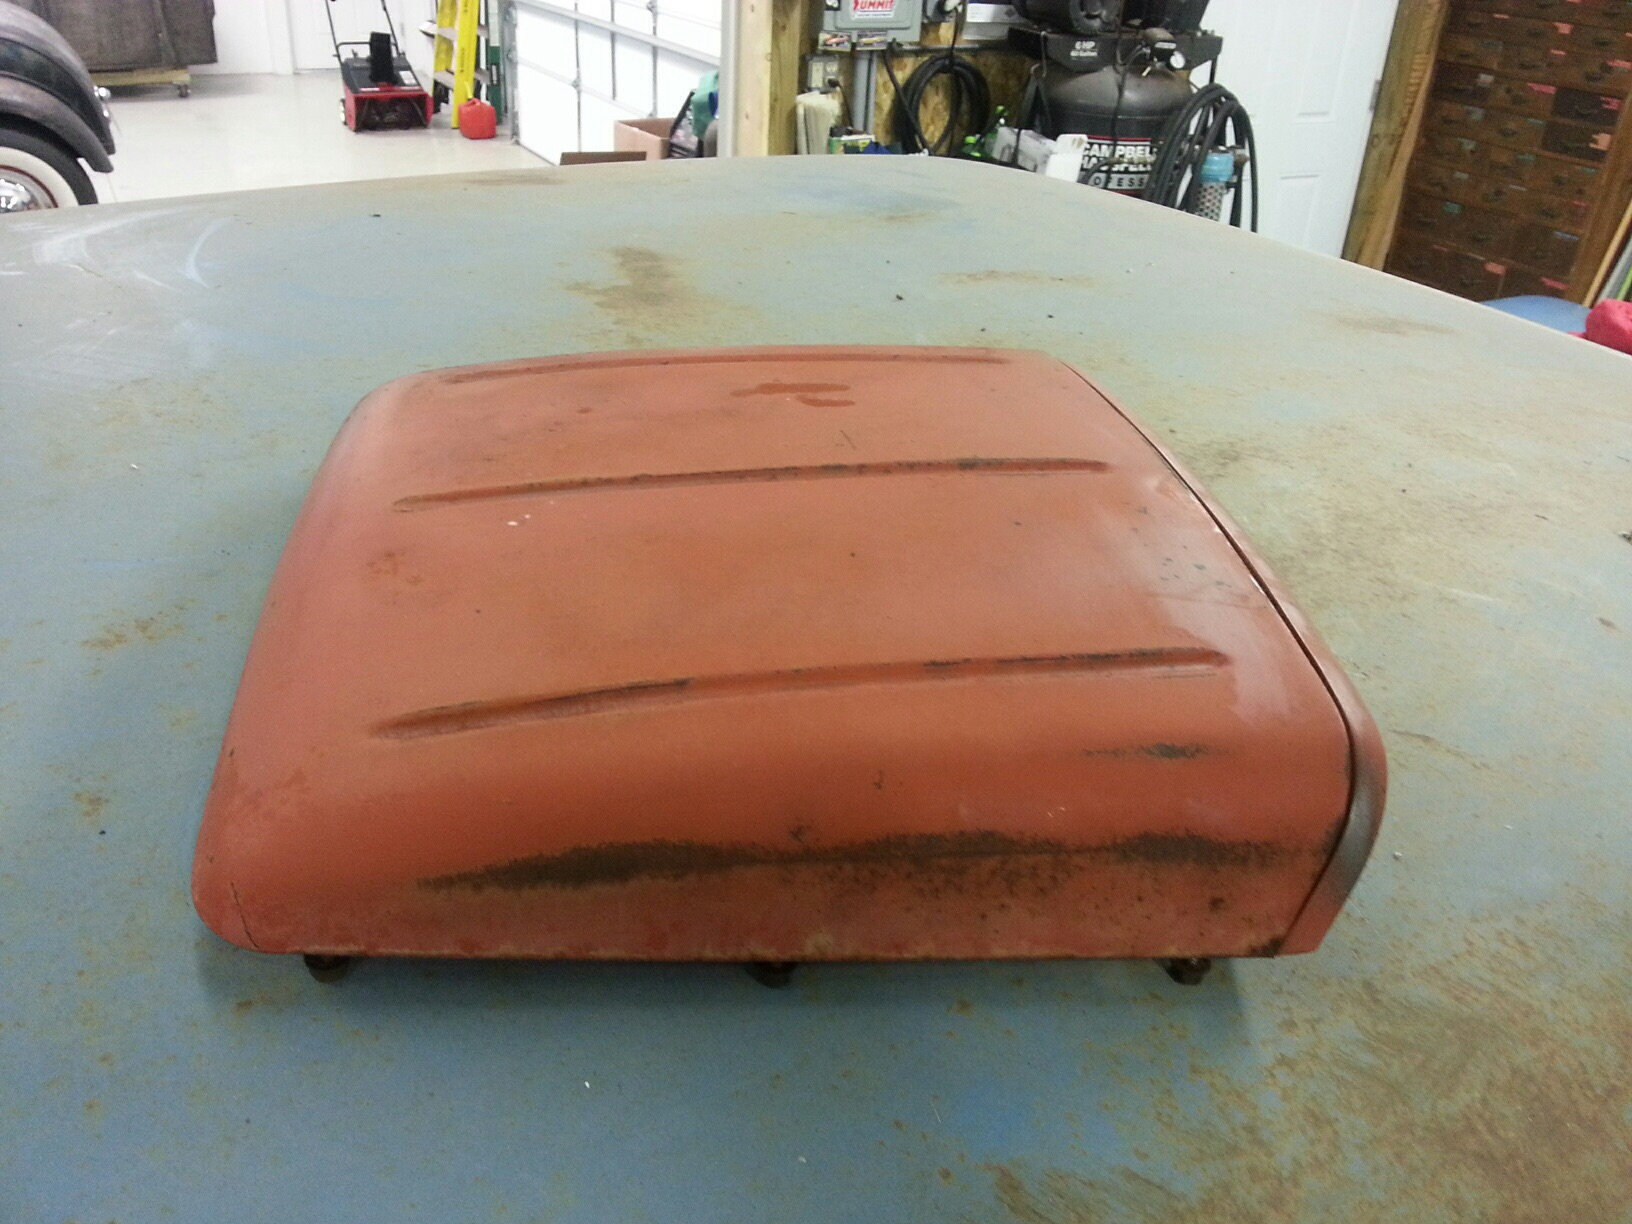 1963 Ford F850 Super Duty F 850 Rot Very Nice Shape Otherwise Perfect For Your Hot Rod Street Or Rat Project